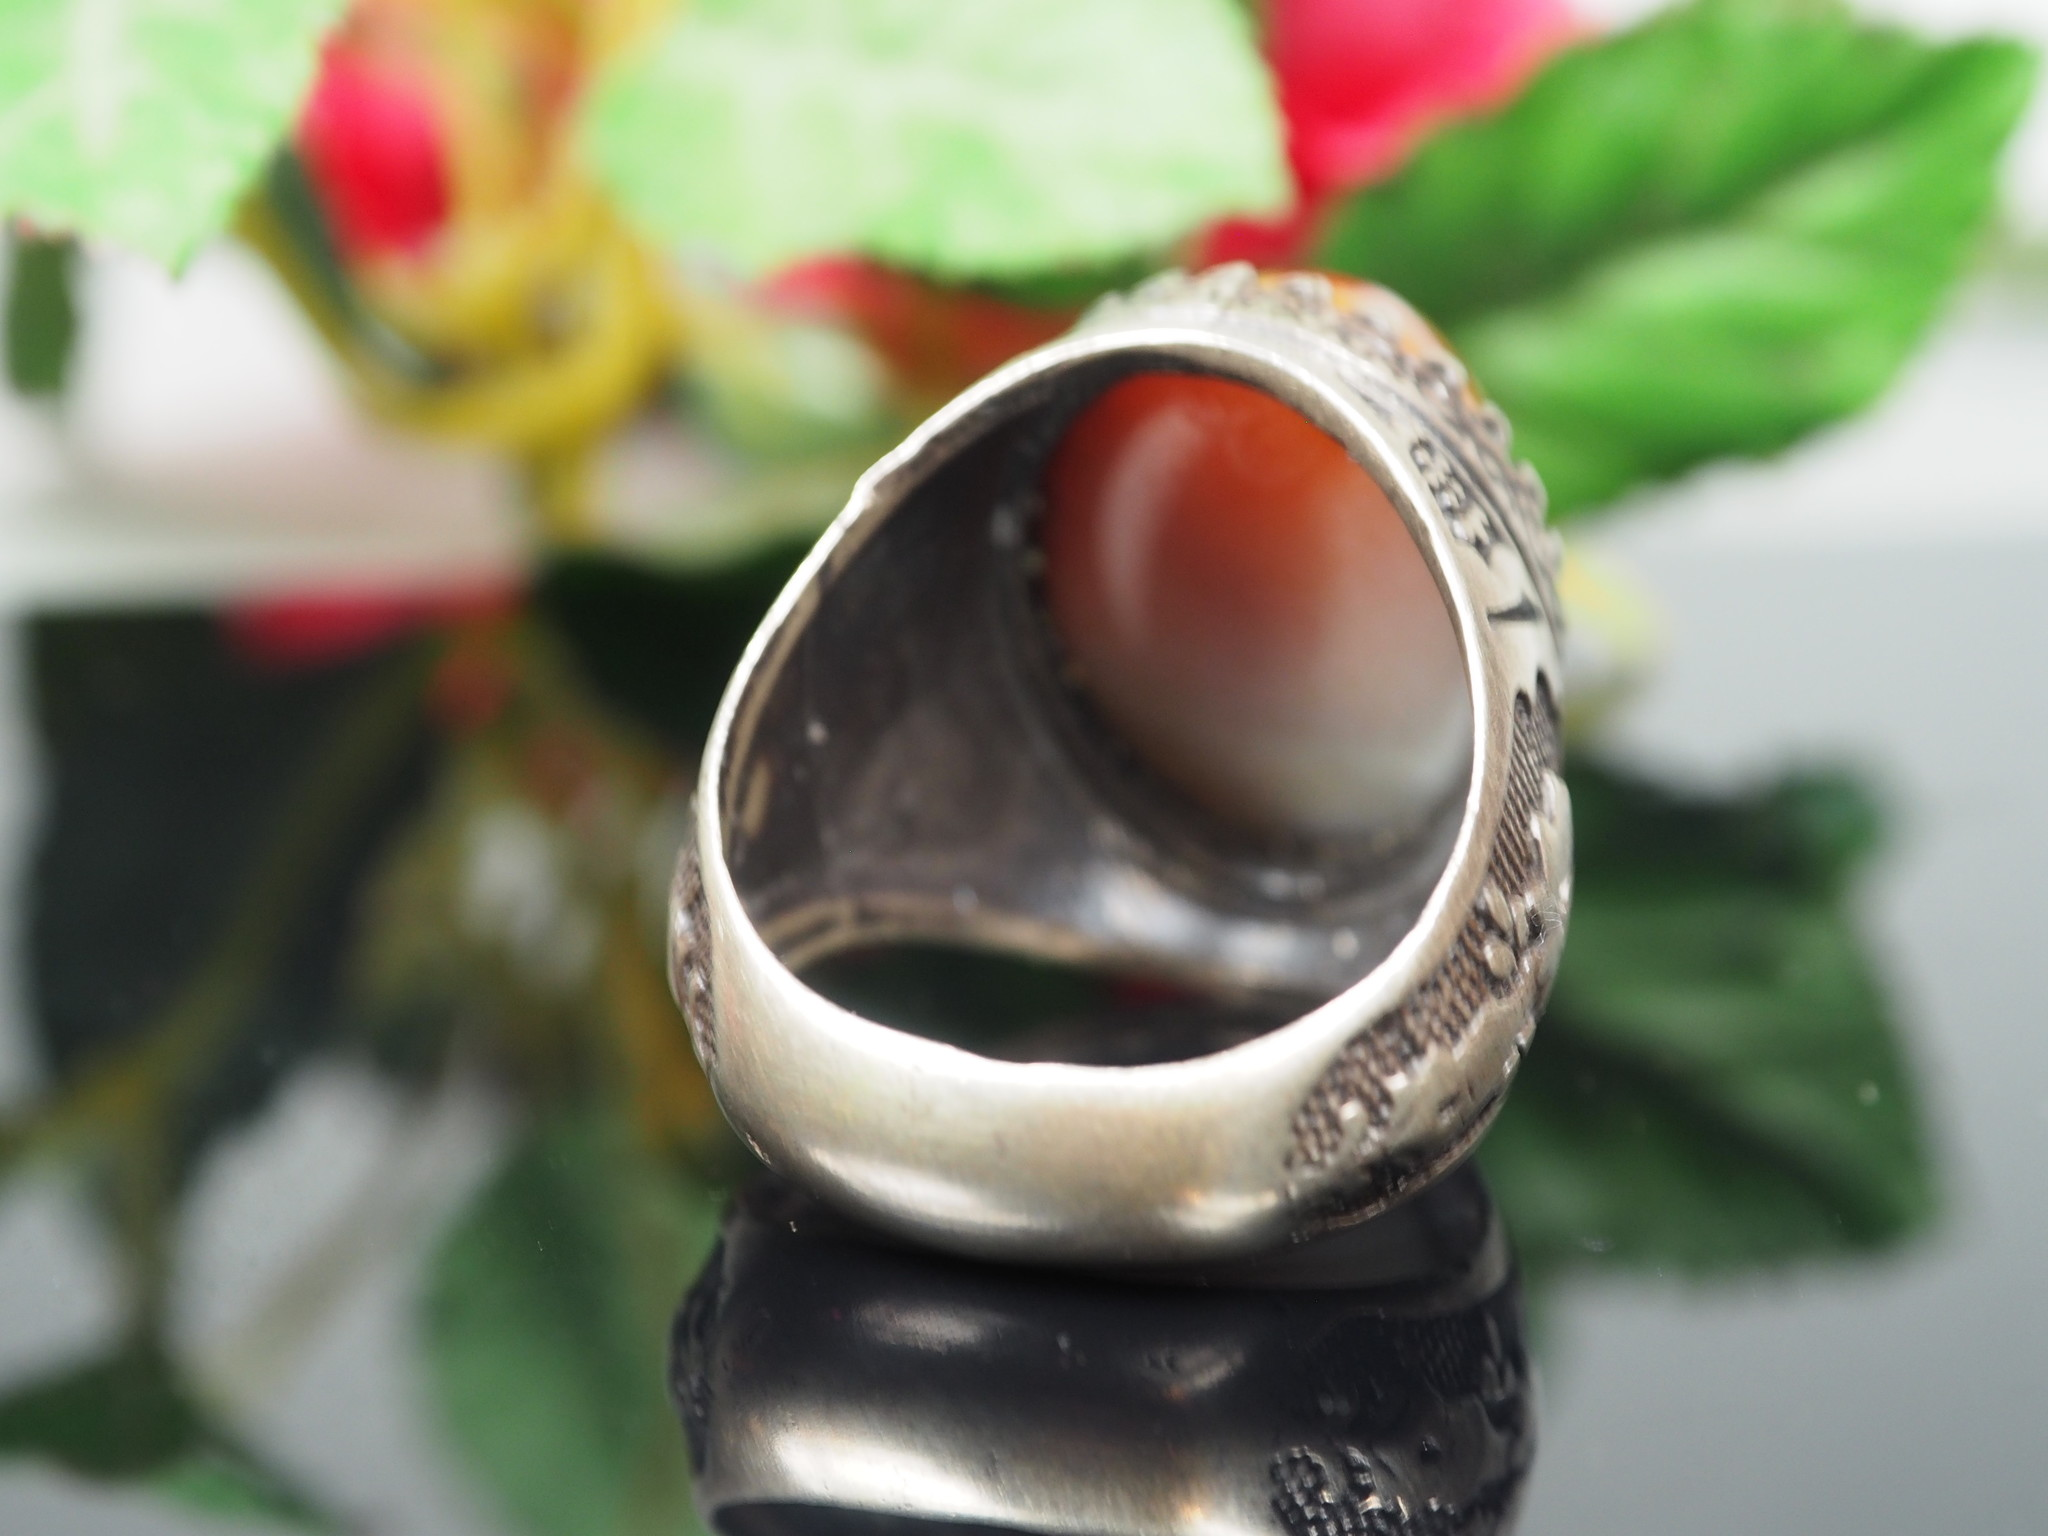 antique handmade Silver eye agate Carnelian stone turkmen statement AQEEQ ring from Afghanistan No:WL21/25